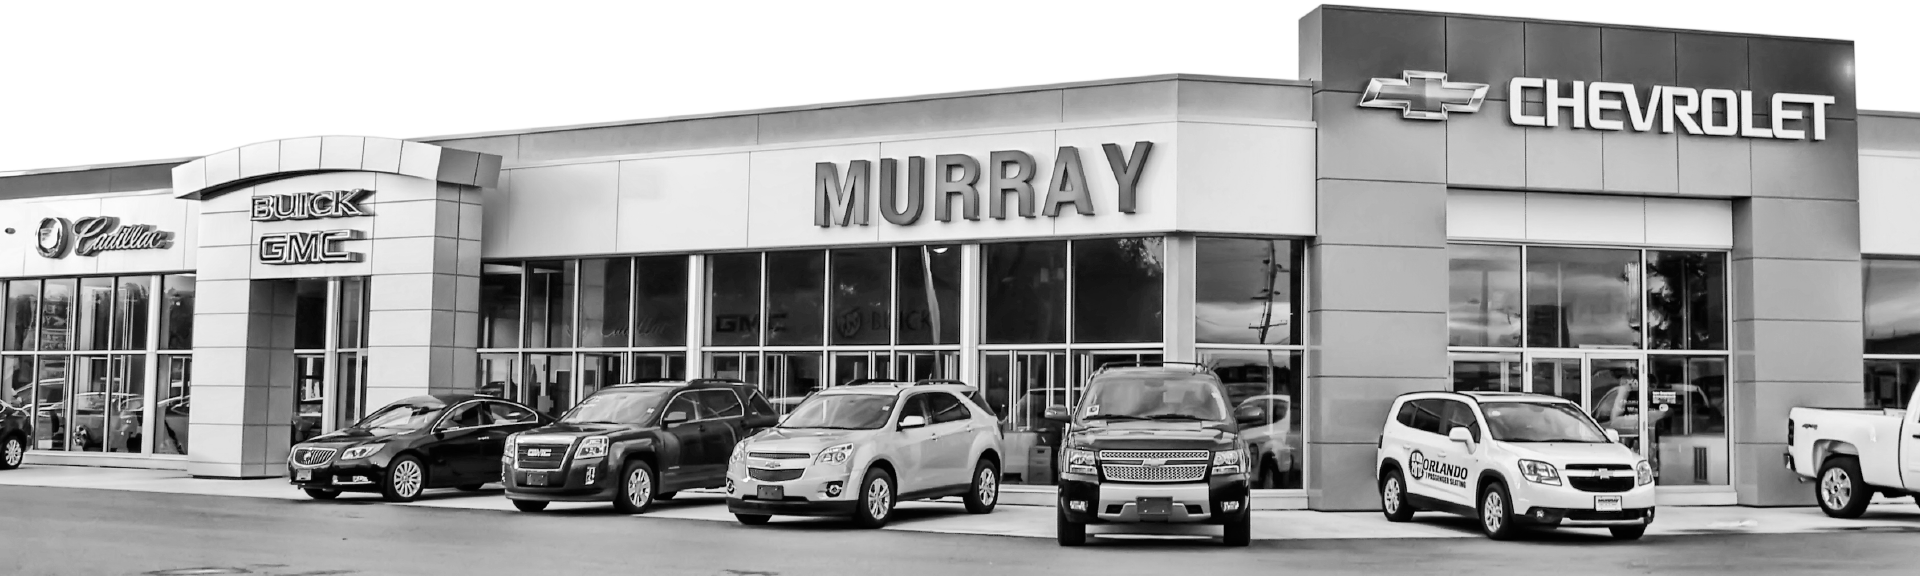 Murray Chevrolet Building